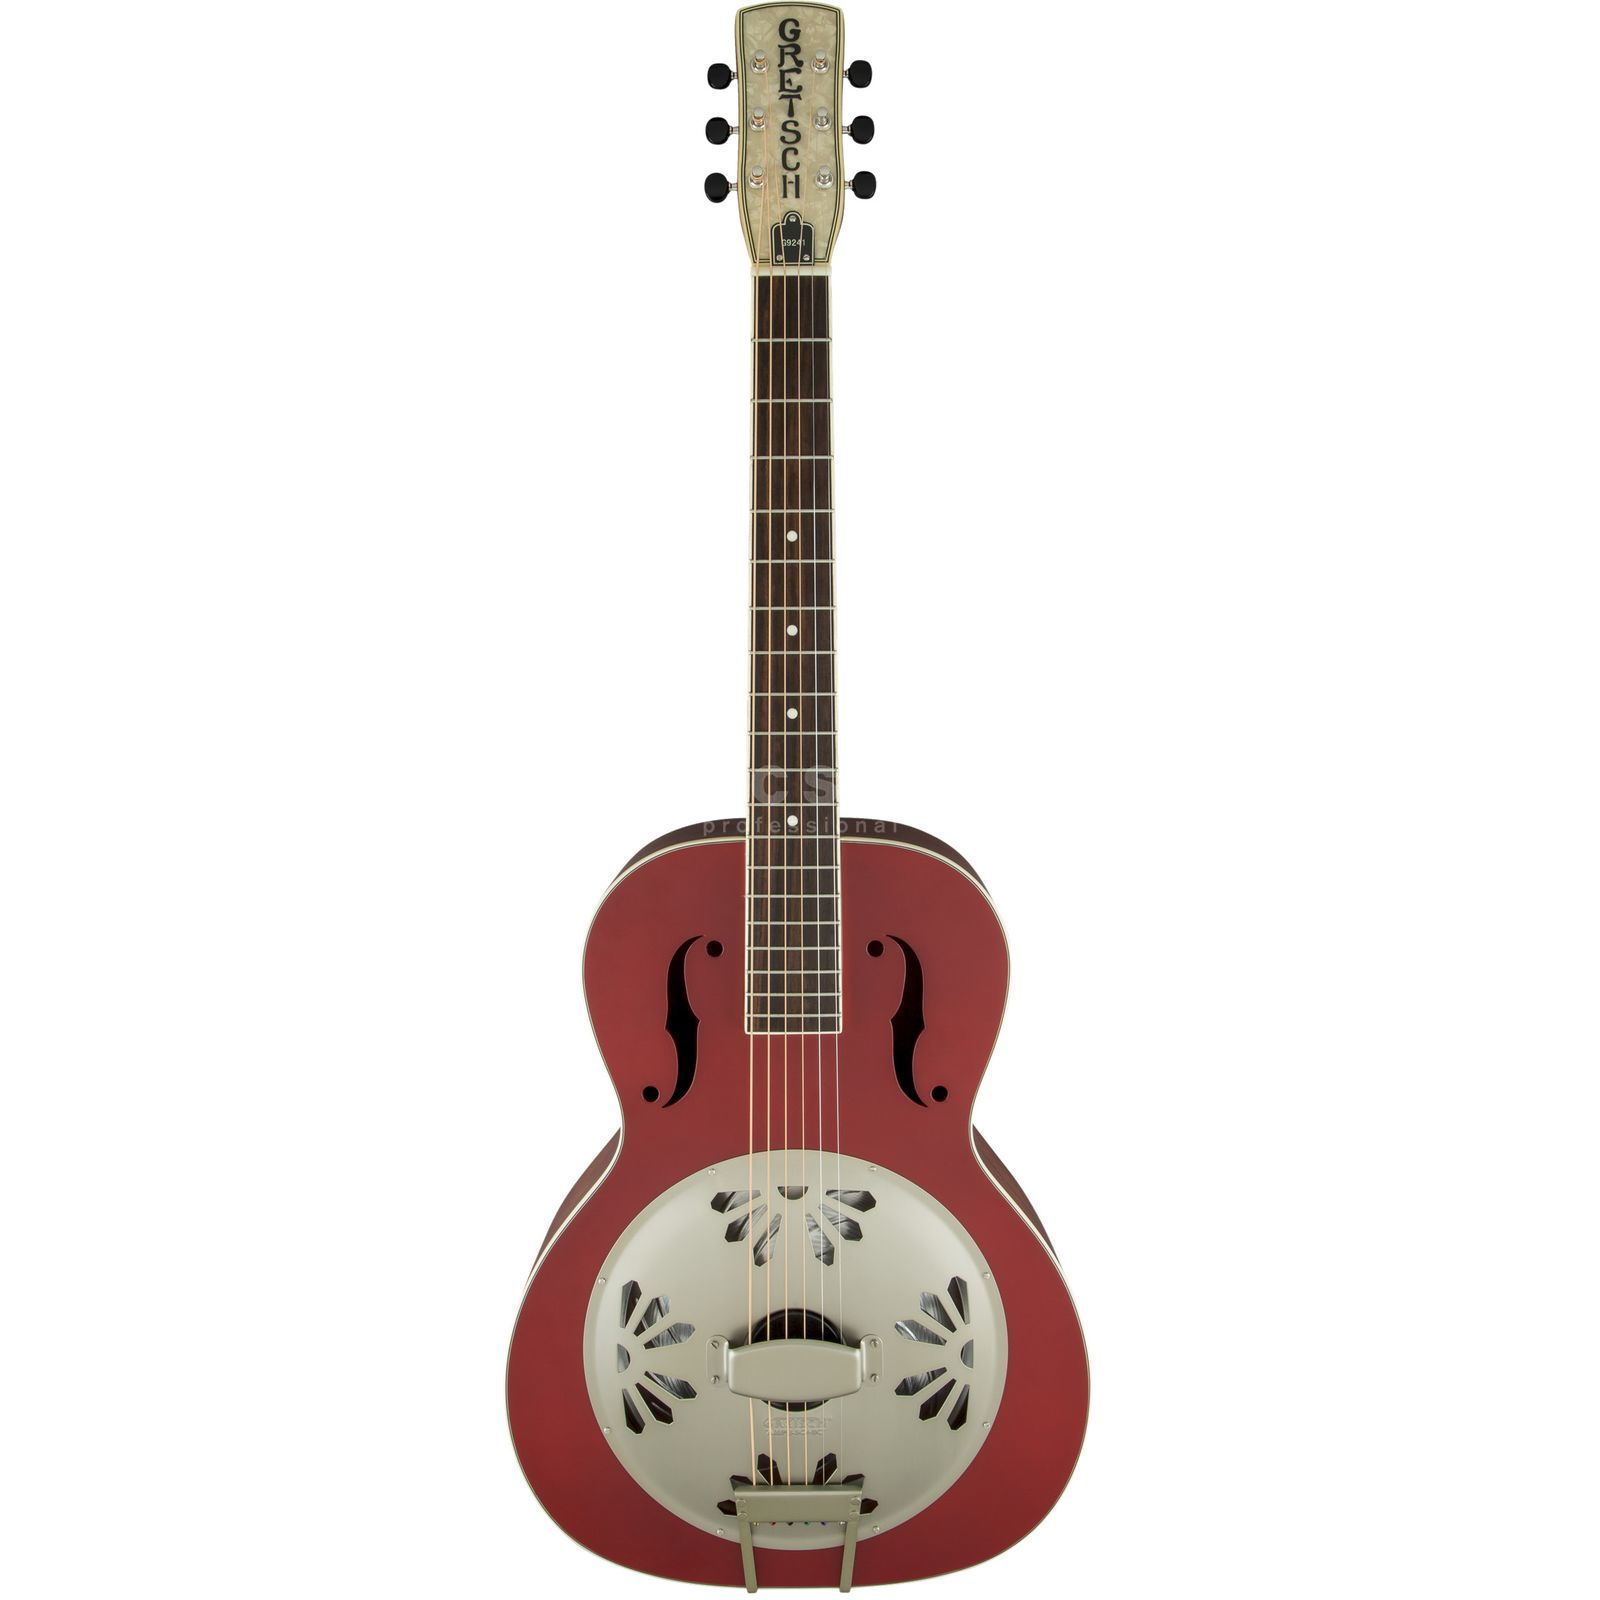 Gretsch G9241 Alligator Biscuit Round Neck Chieftain Red Product Image